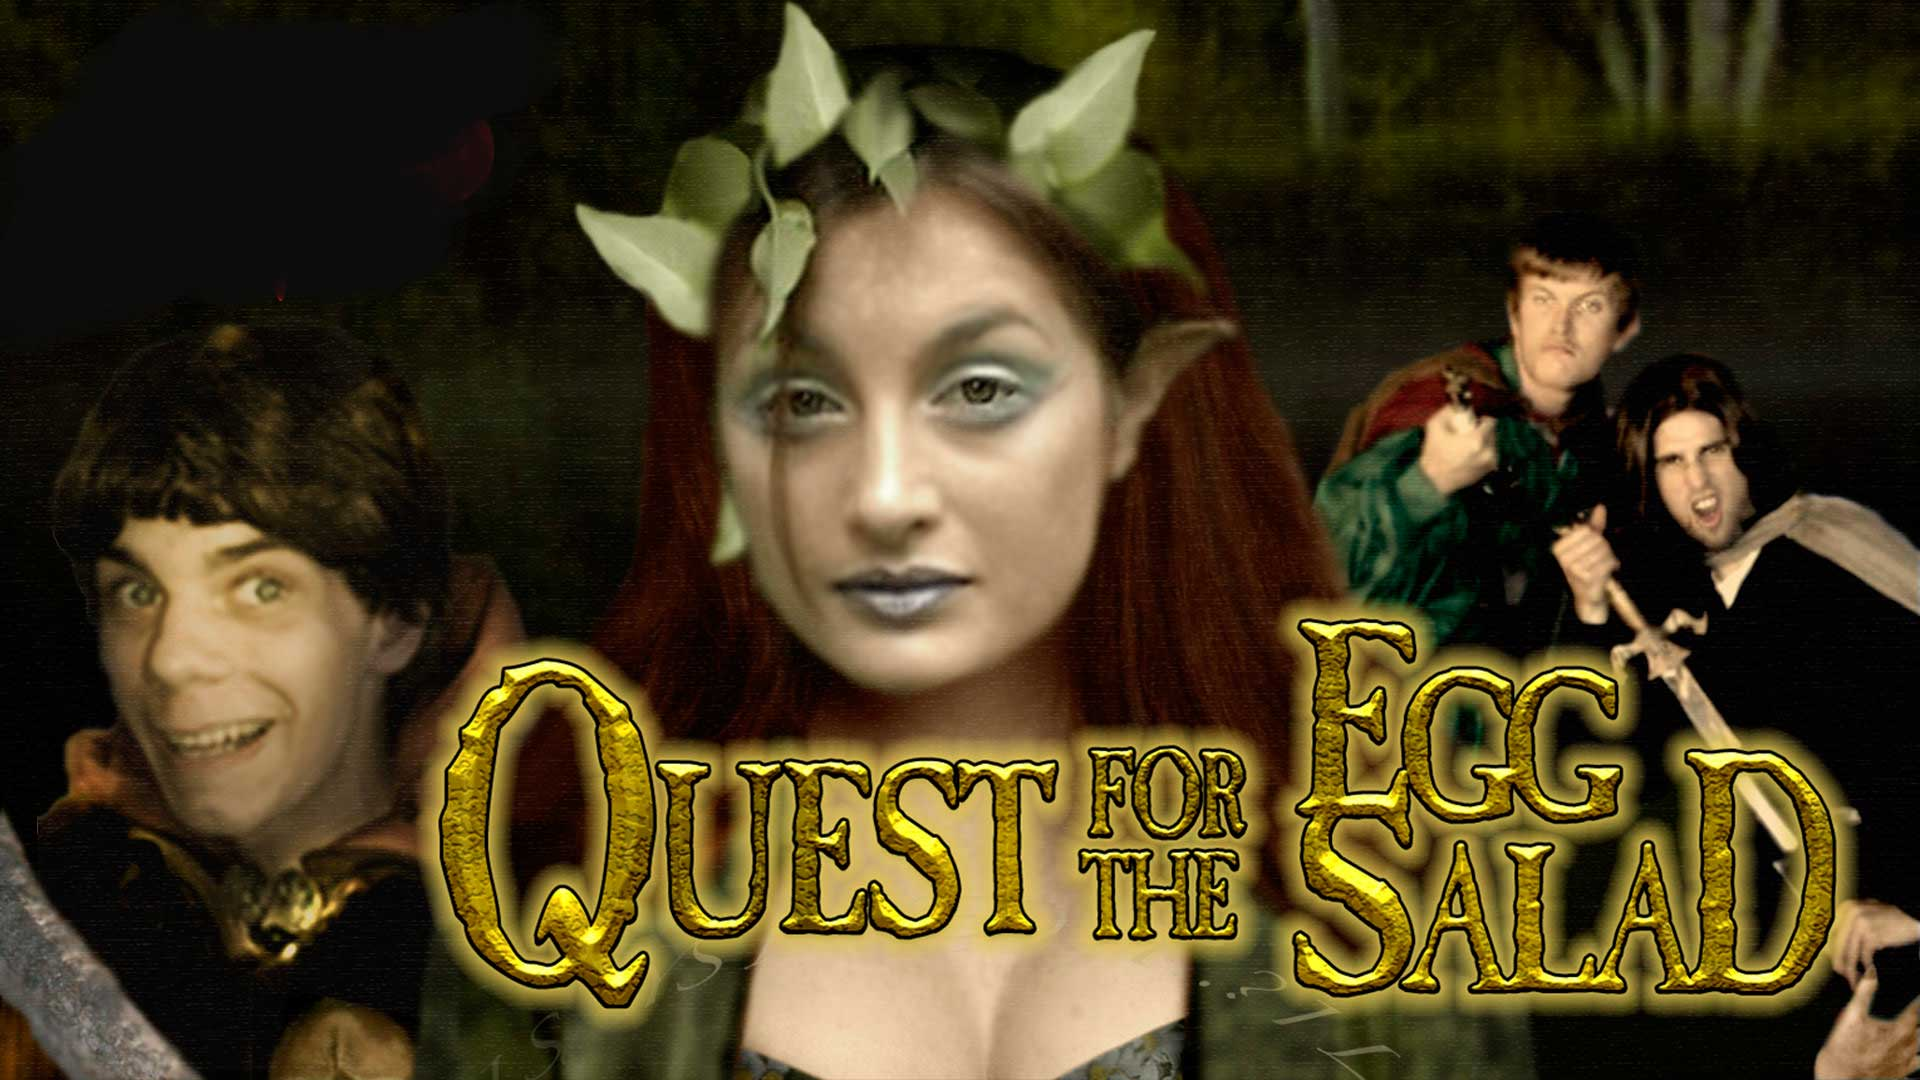 Quest For The Egg Salad